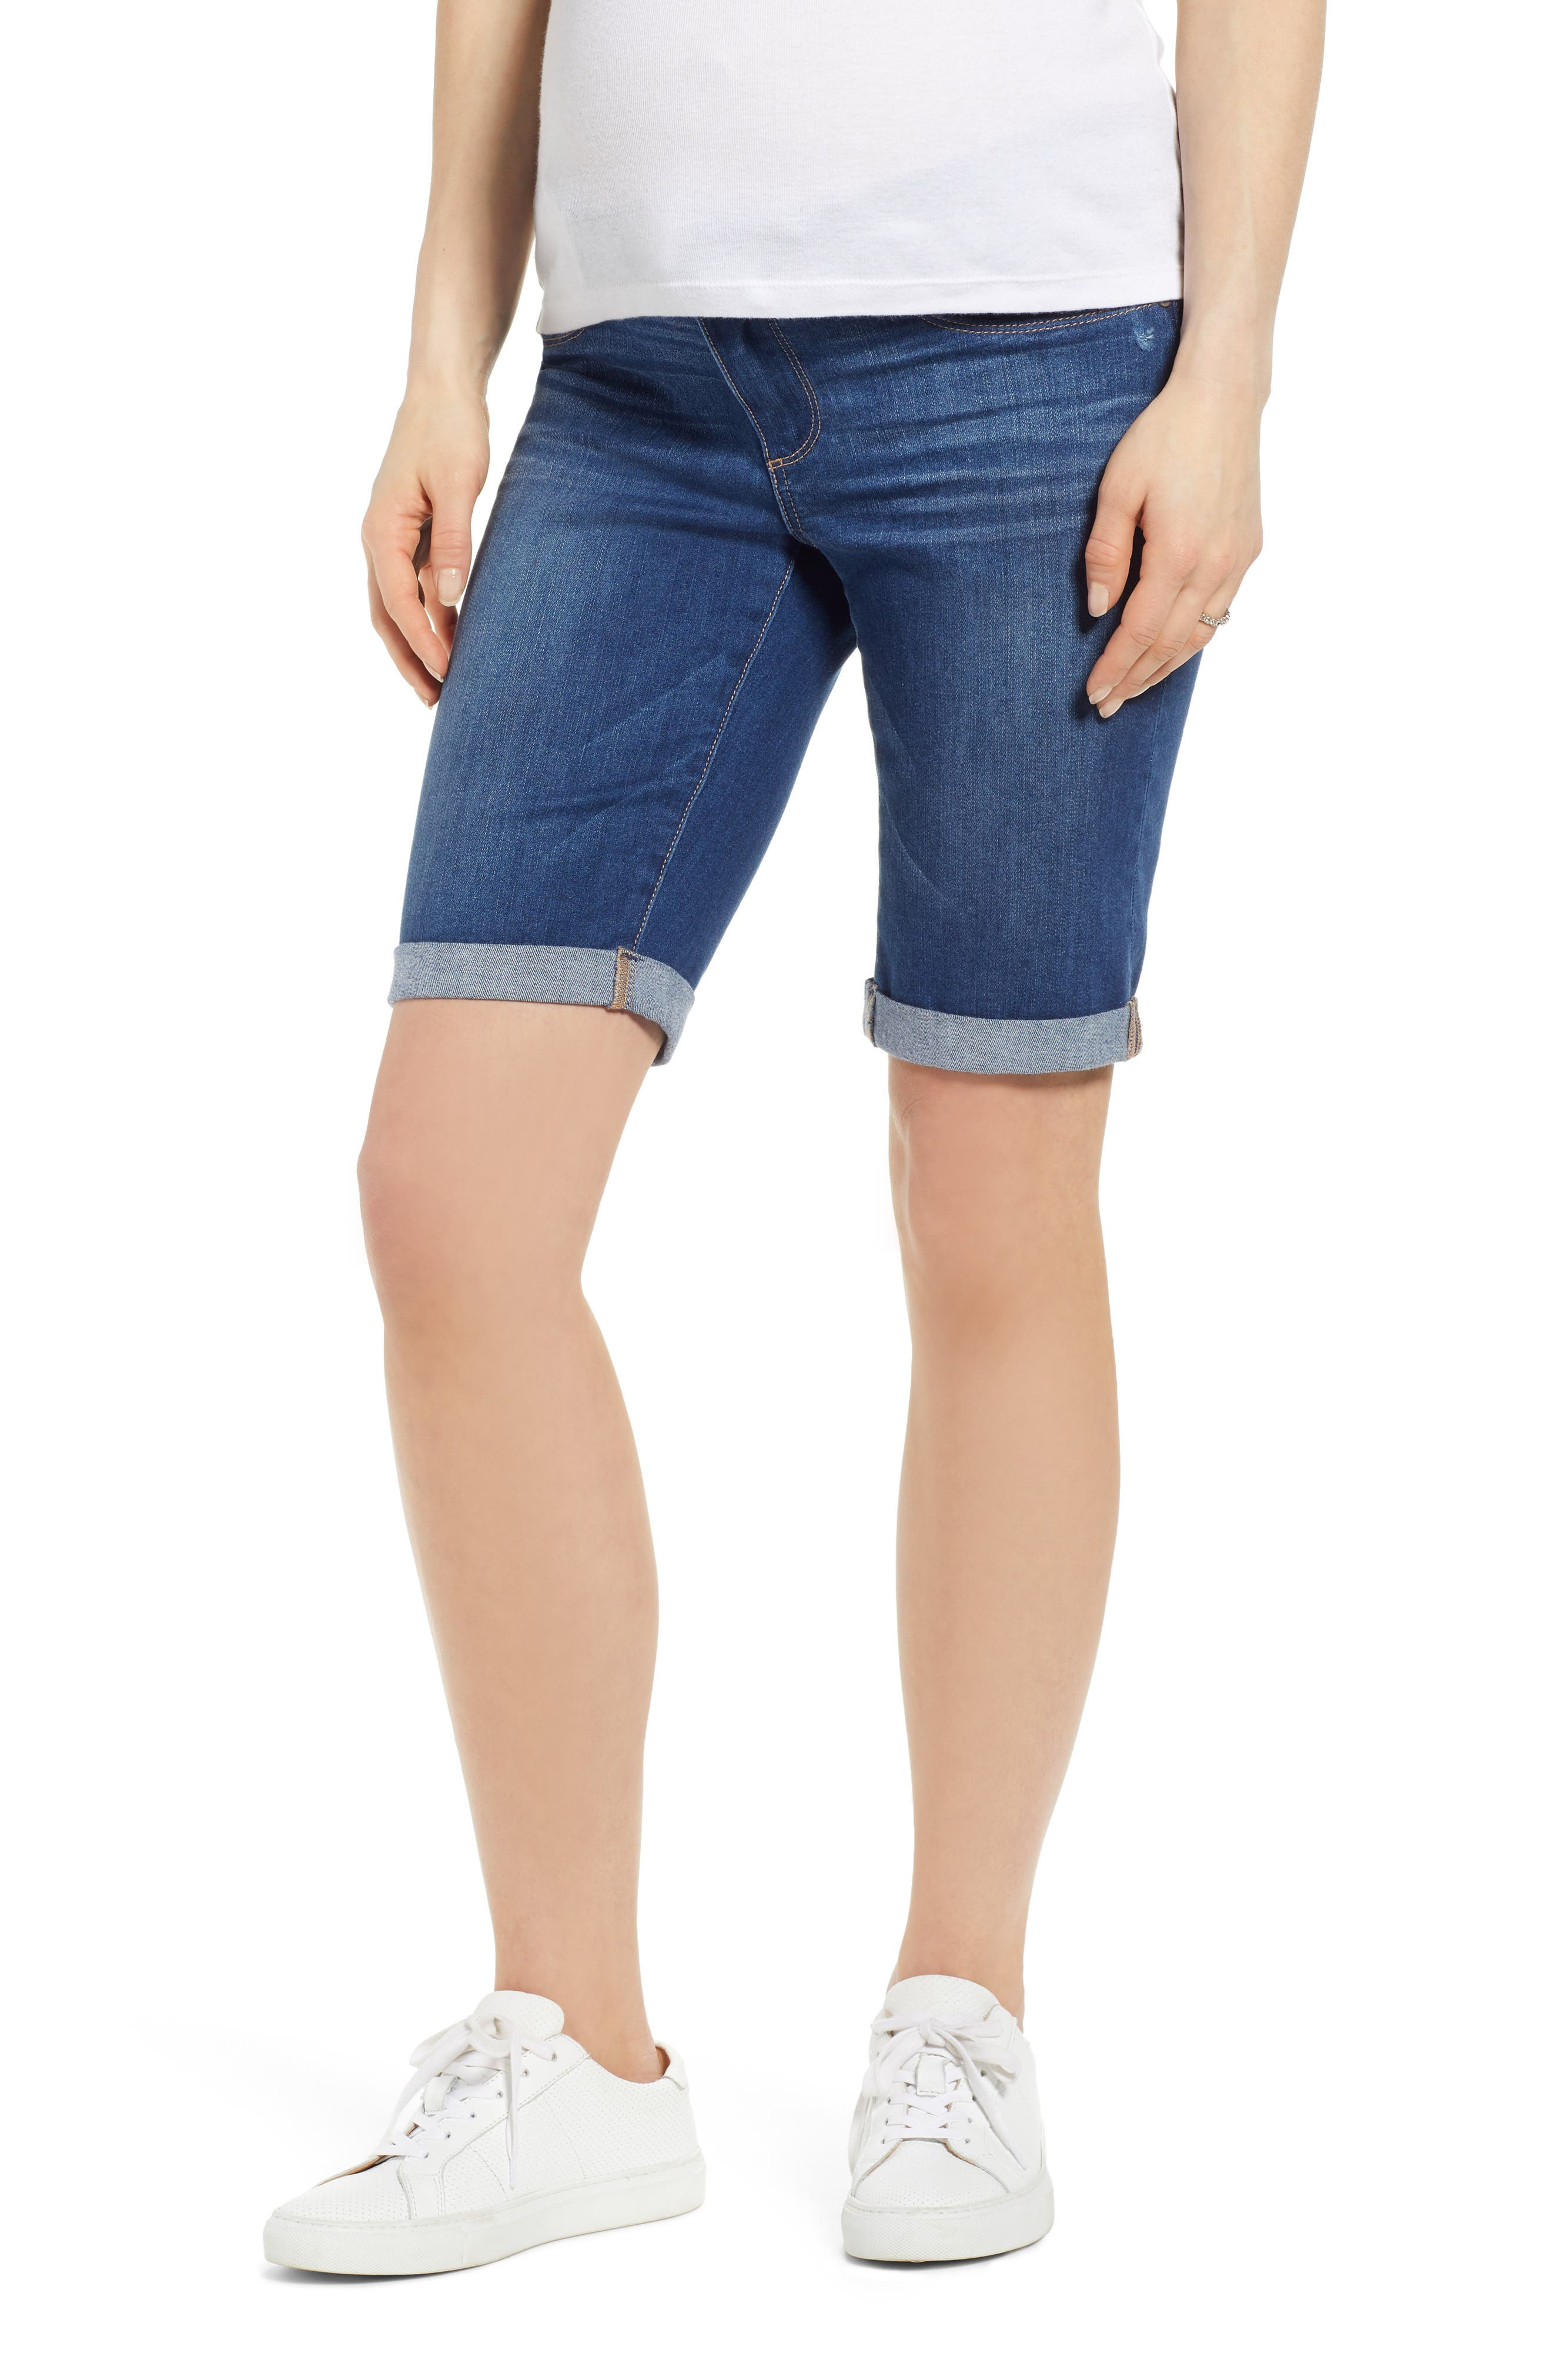 Women's Paige Transcend Vintage - Jax Denim Maternity Shorts